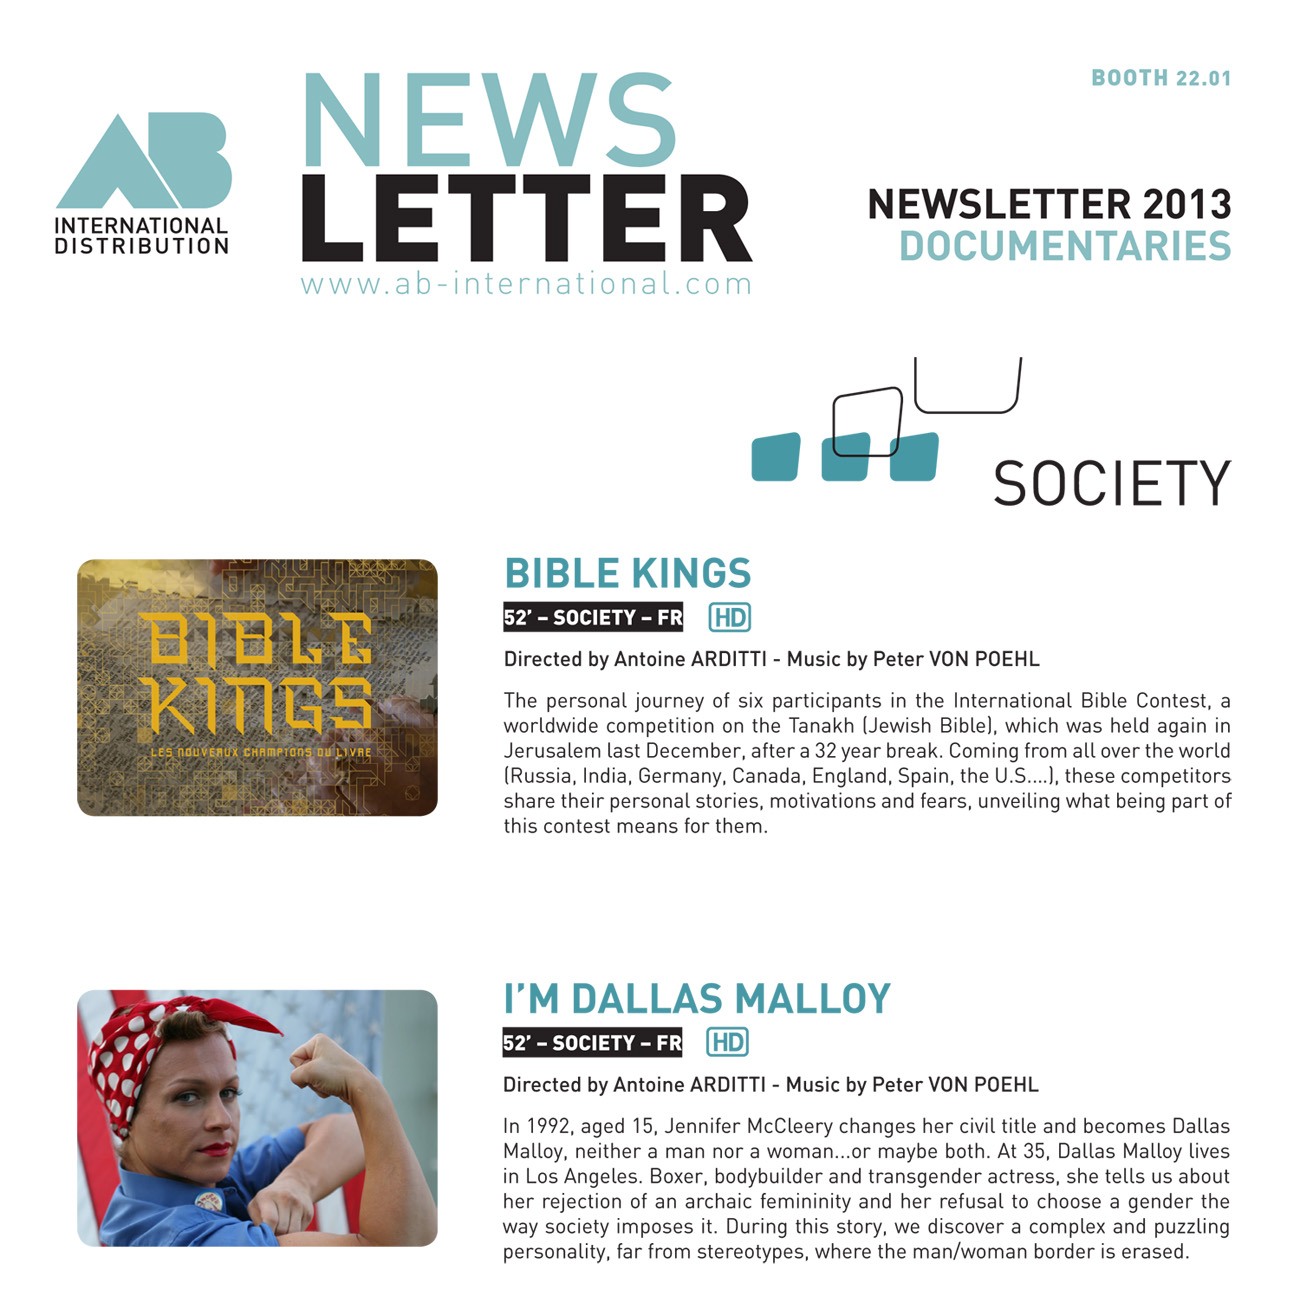 newsletter DOCU OCT 2013 B.indd